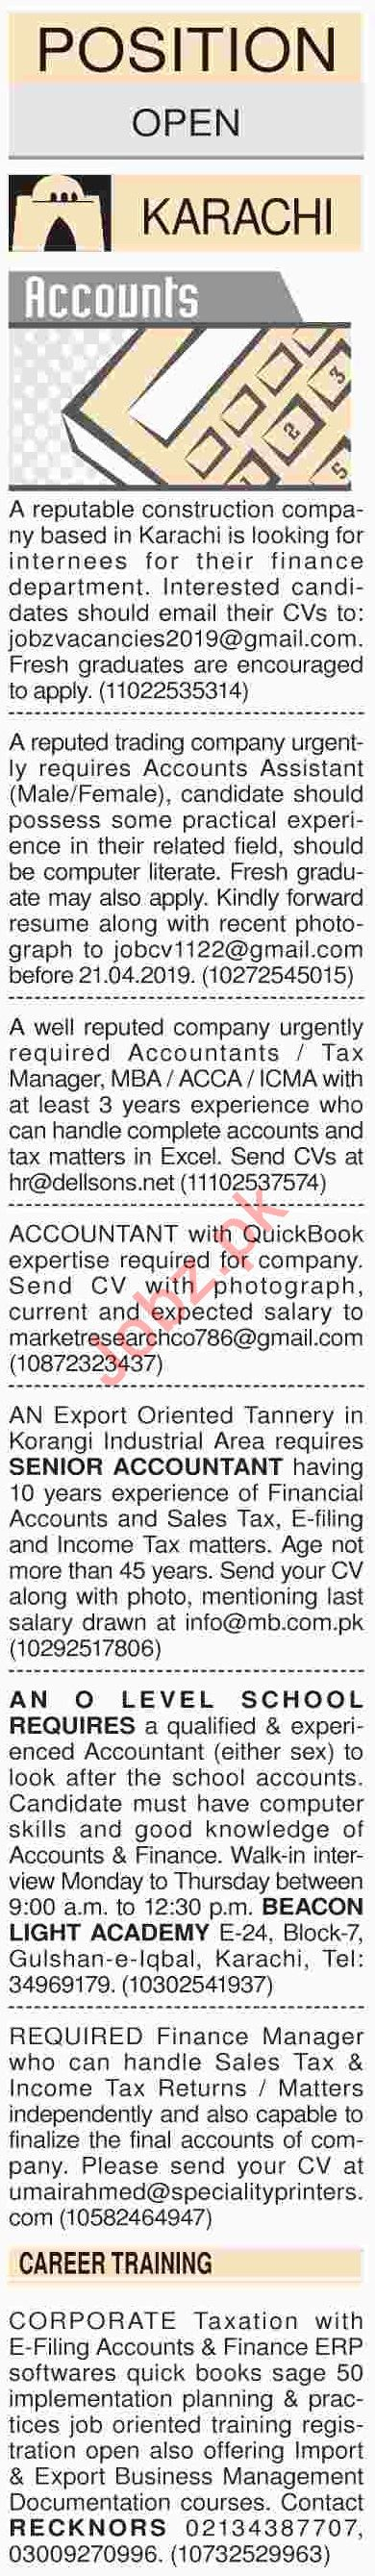 Dawn Sunday Classified Ads 14th April 2019 for Accounts